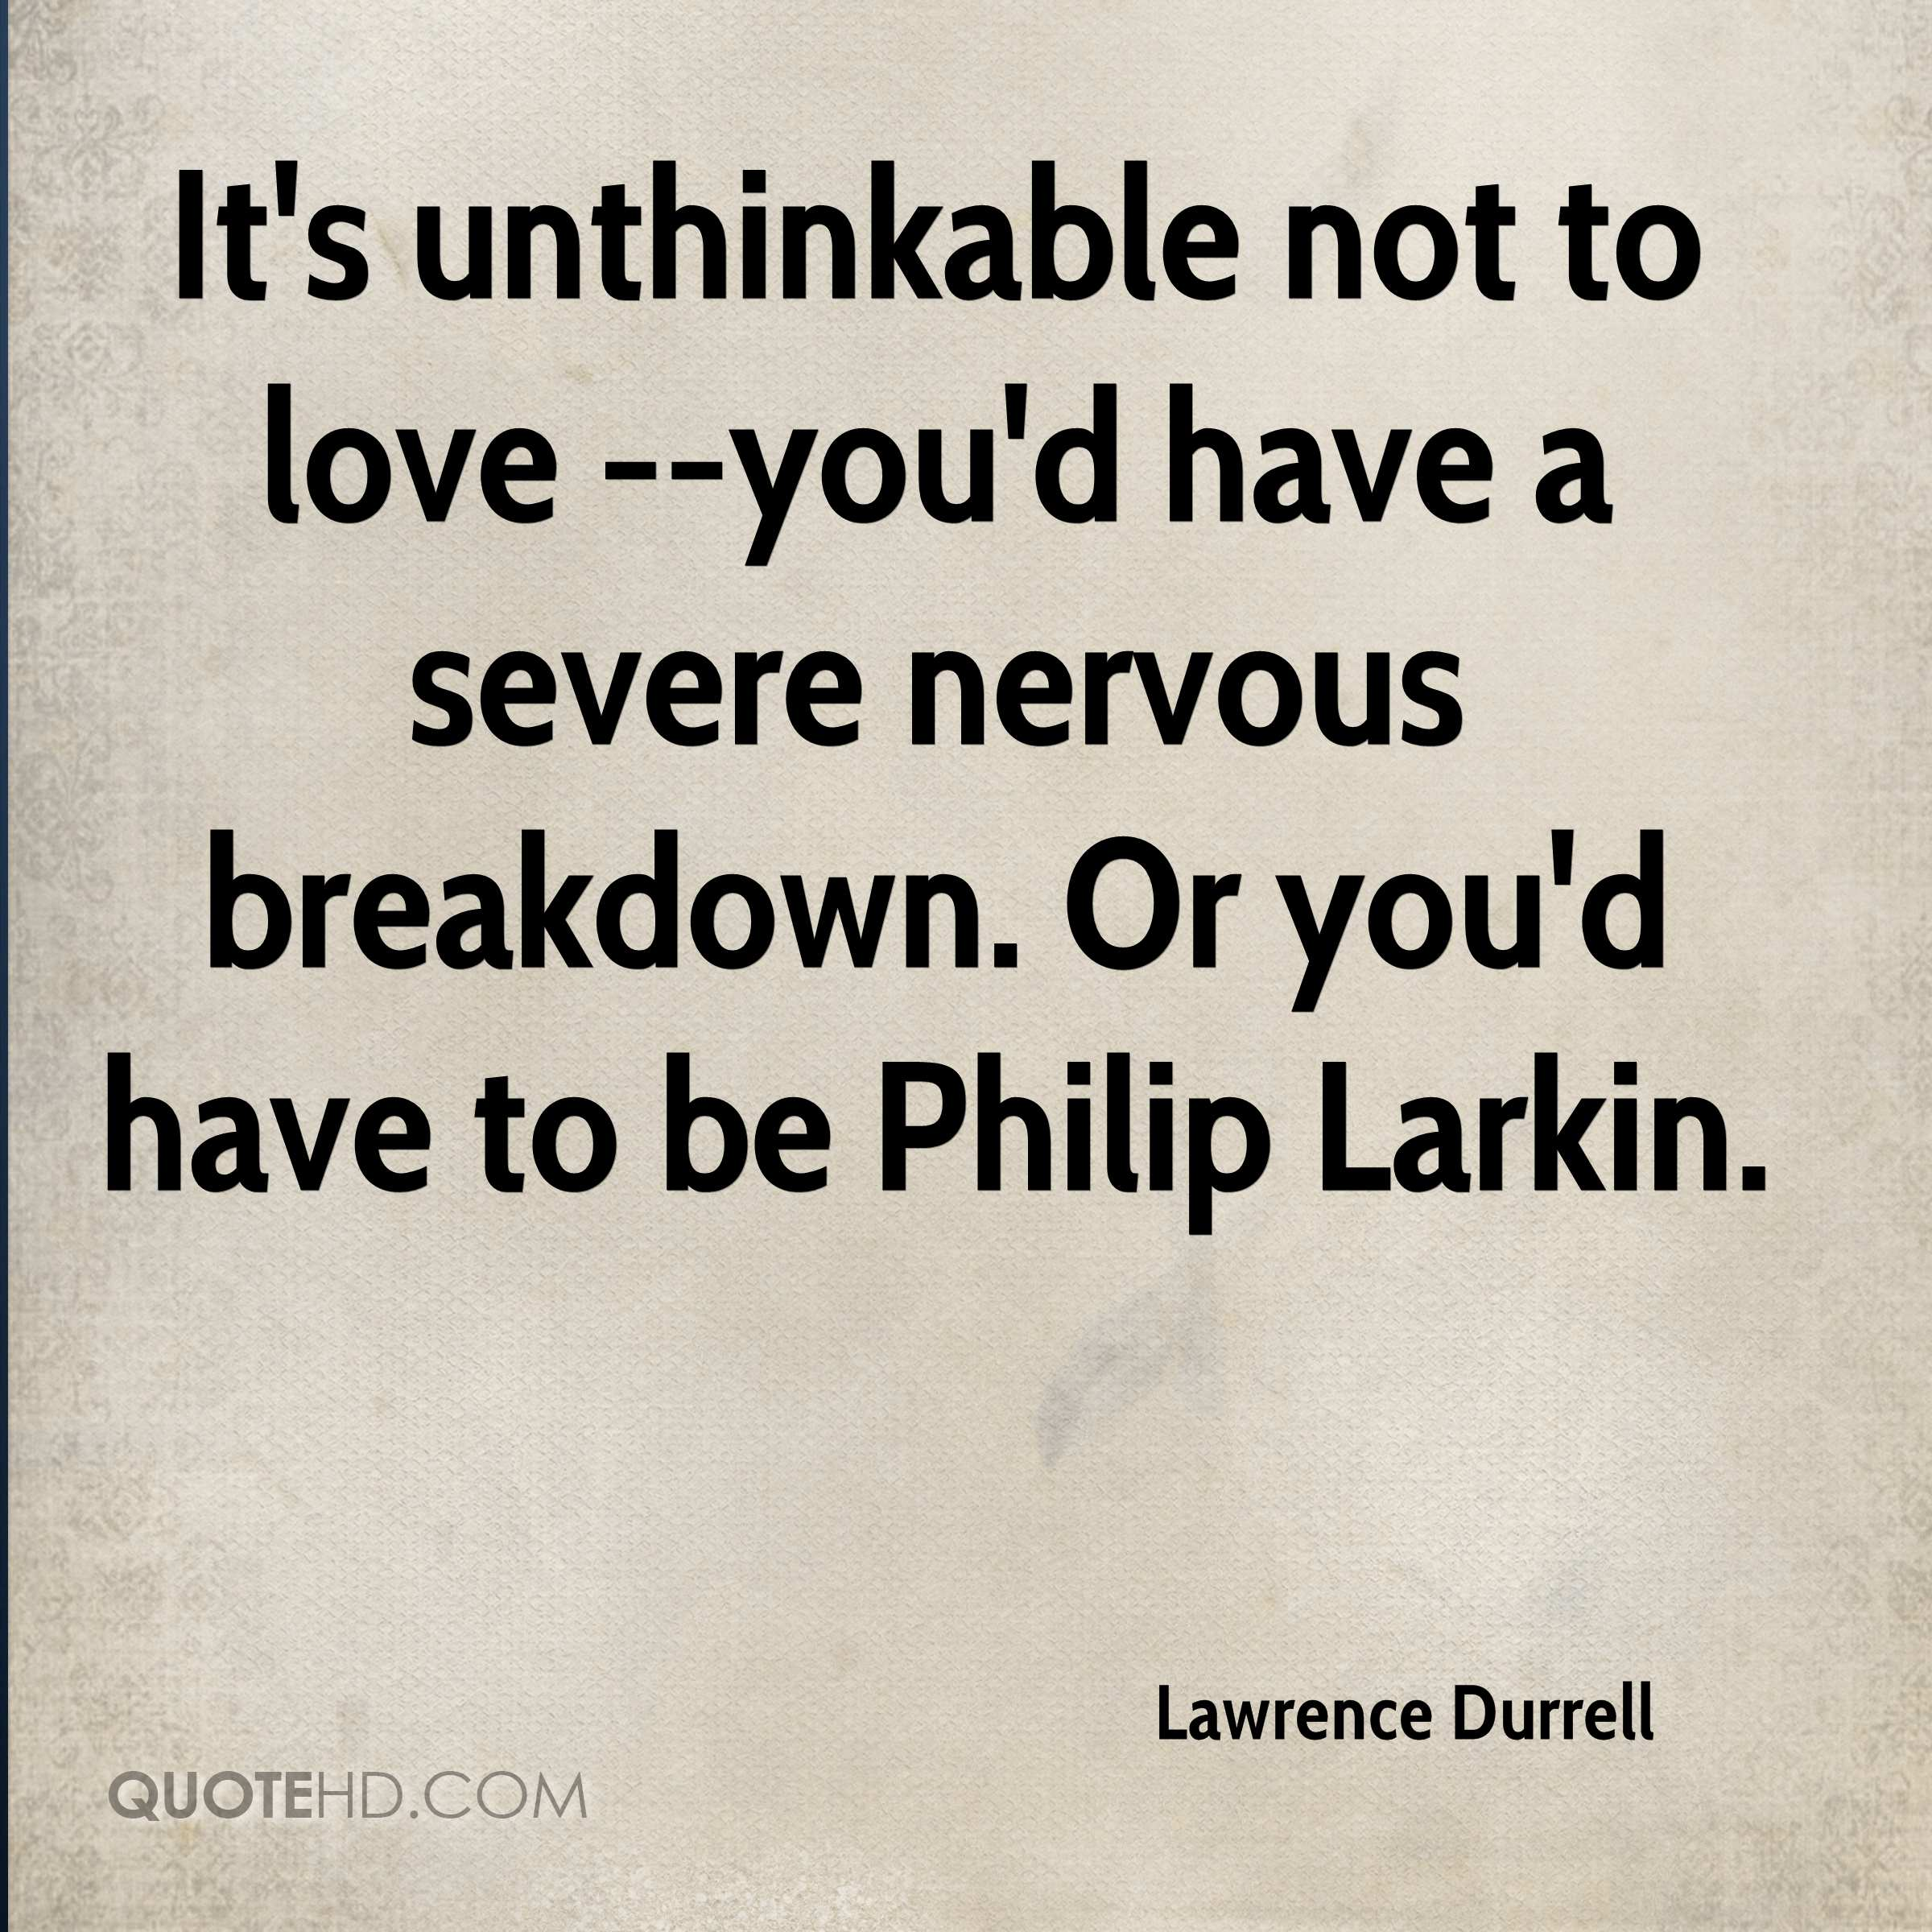 It's unthinkable not to love --you'd have a severe nervous breakdown. Or you'd have to be Philip Larkin.